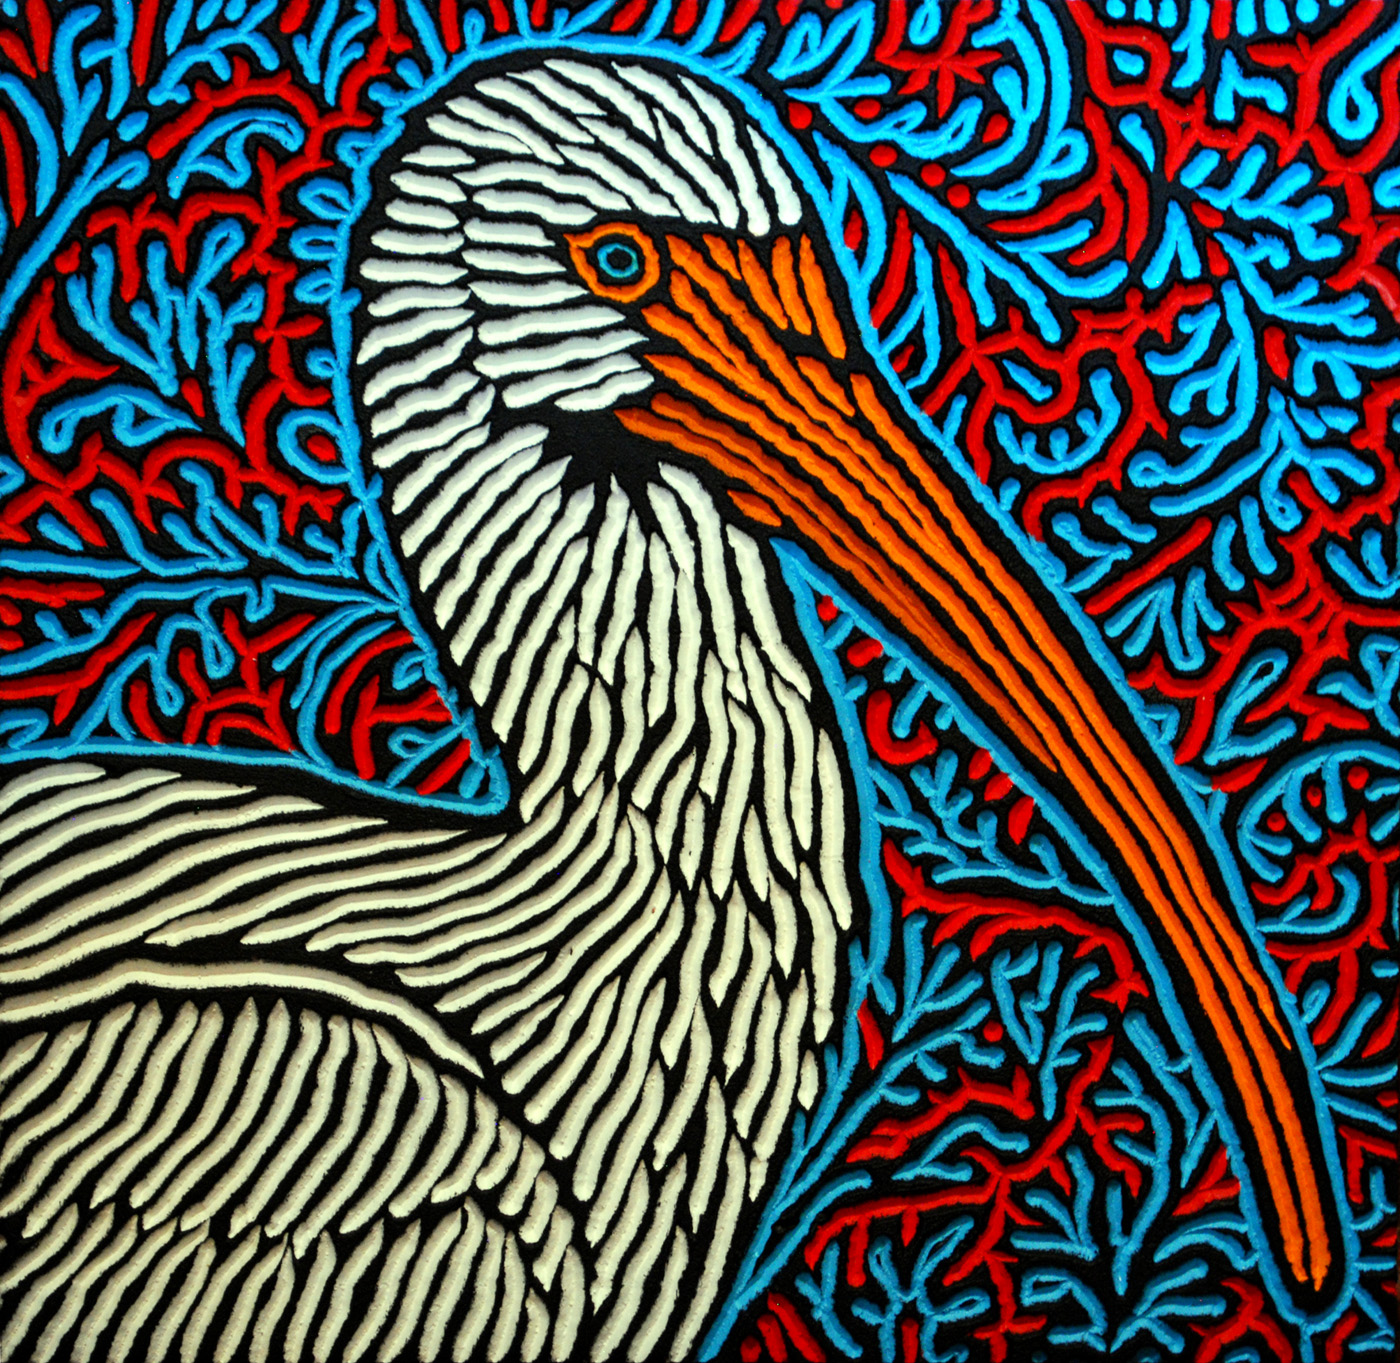 Lisa Brawn's wild bird woodcuts are so detailed and realistic and then set against a crazy beautiful background of colour and design--I love them!